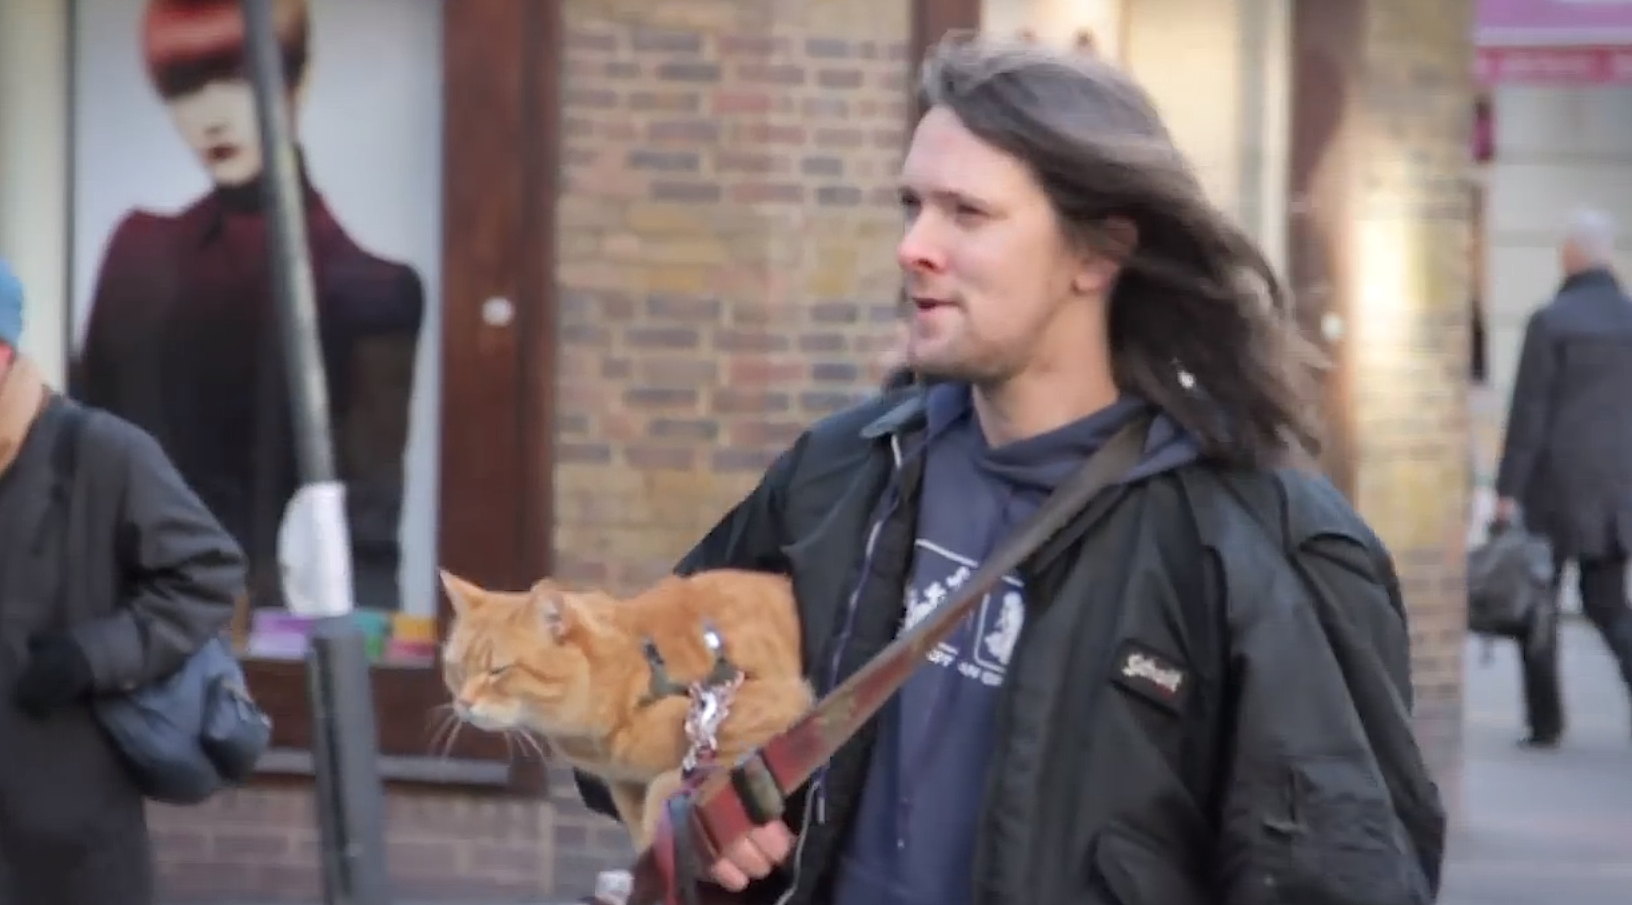 street-musician-with-cat